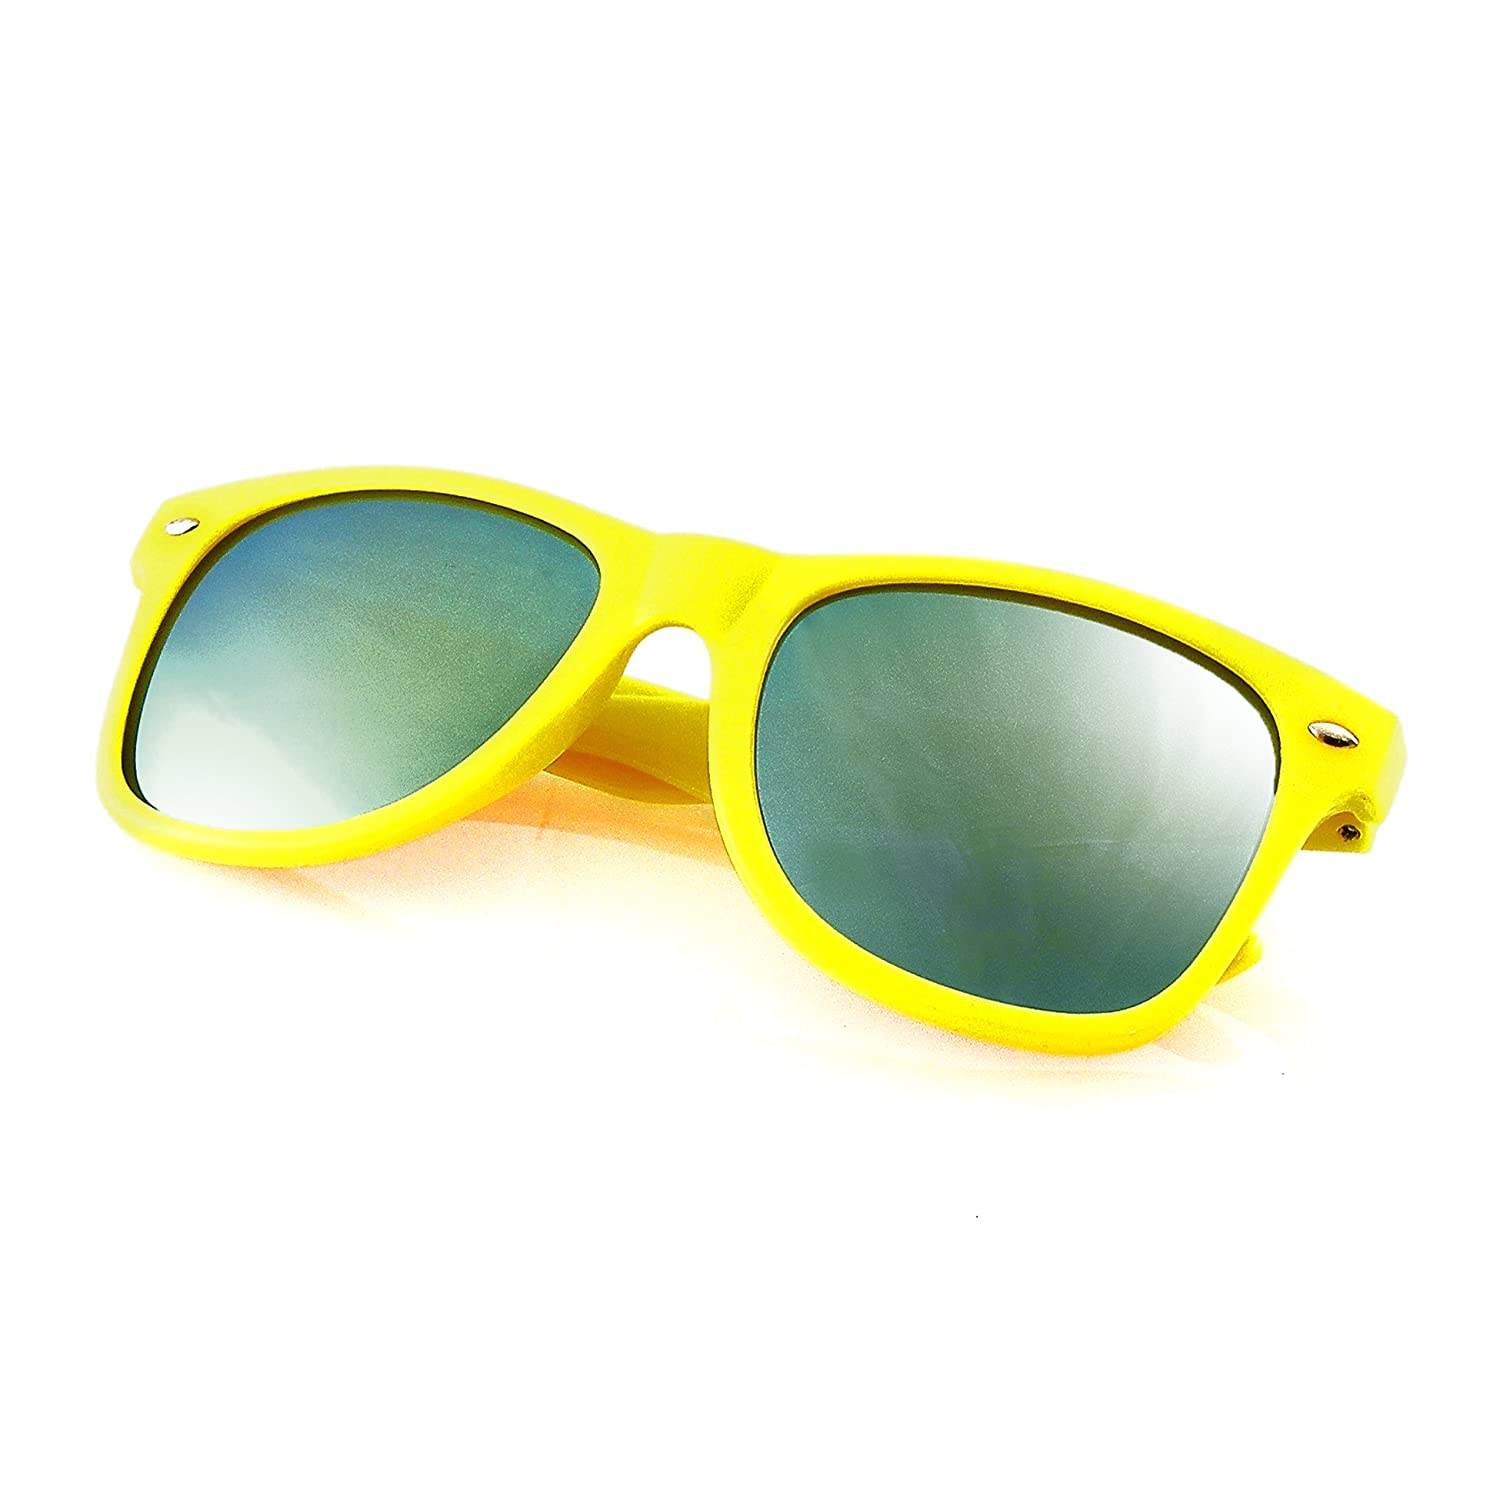 dab27ead05e Flash Color Mirror Reflective Lens Neon Sunglasses (Blue)  Amazon.co.uk   Clothing